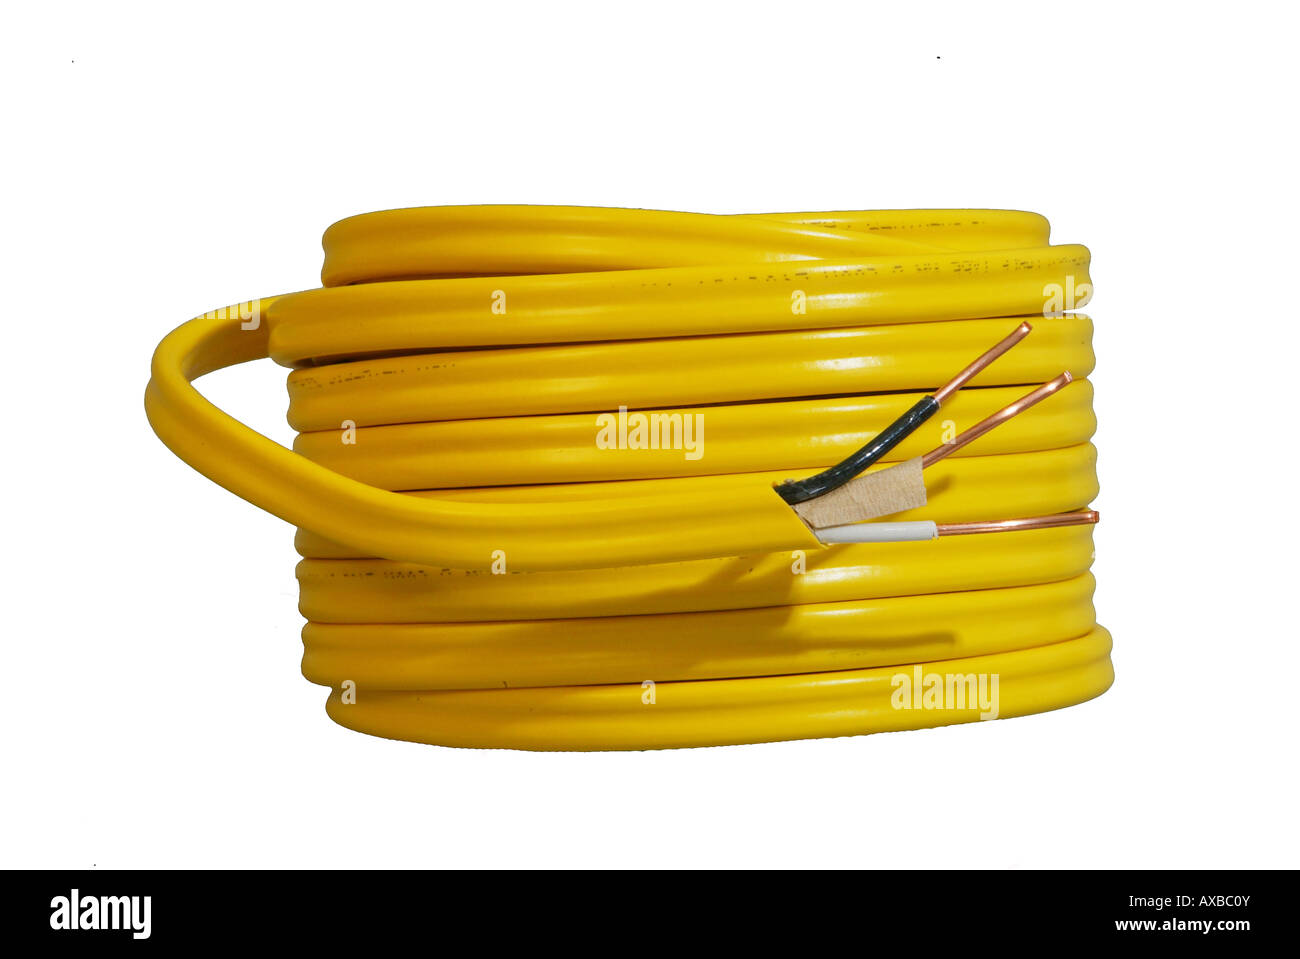 Delighted Yellow Romex Wire Gallery - Electrical System Block ...